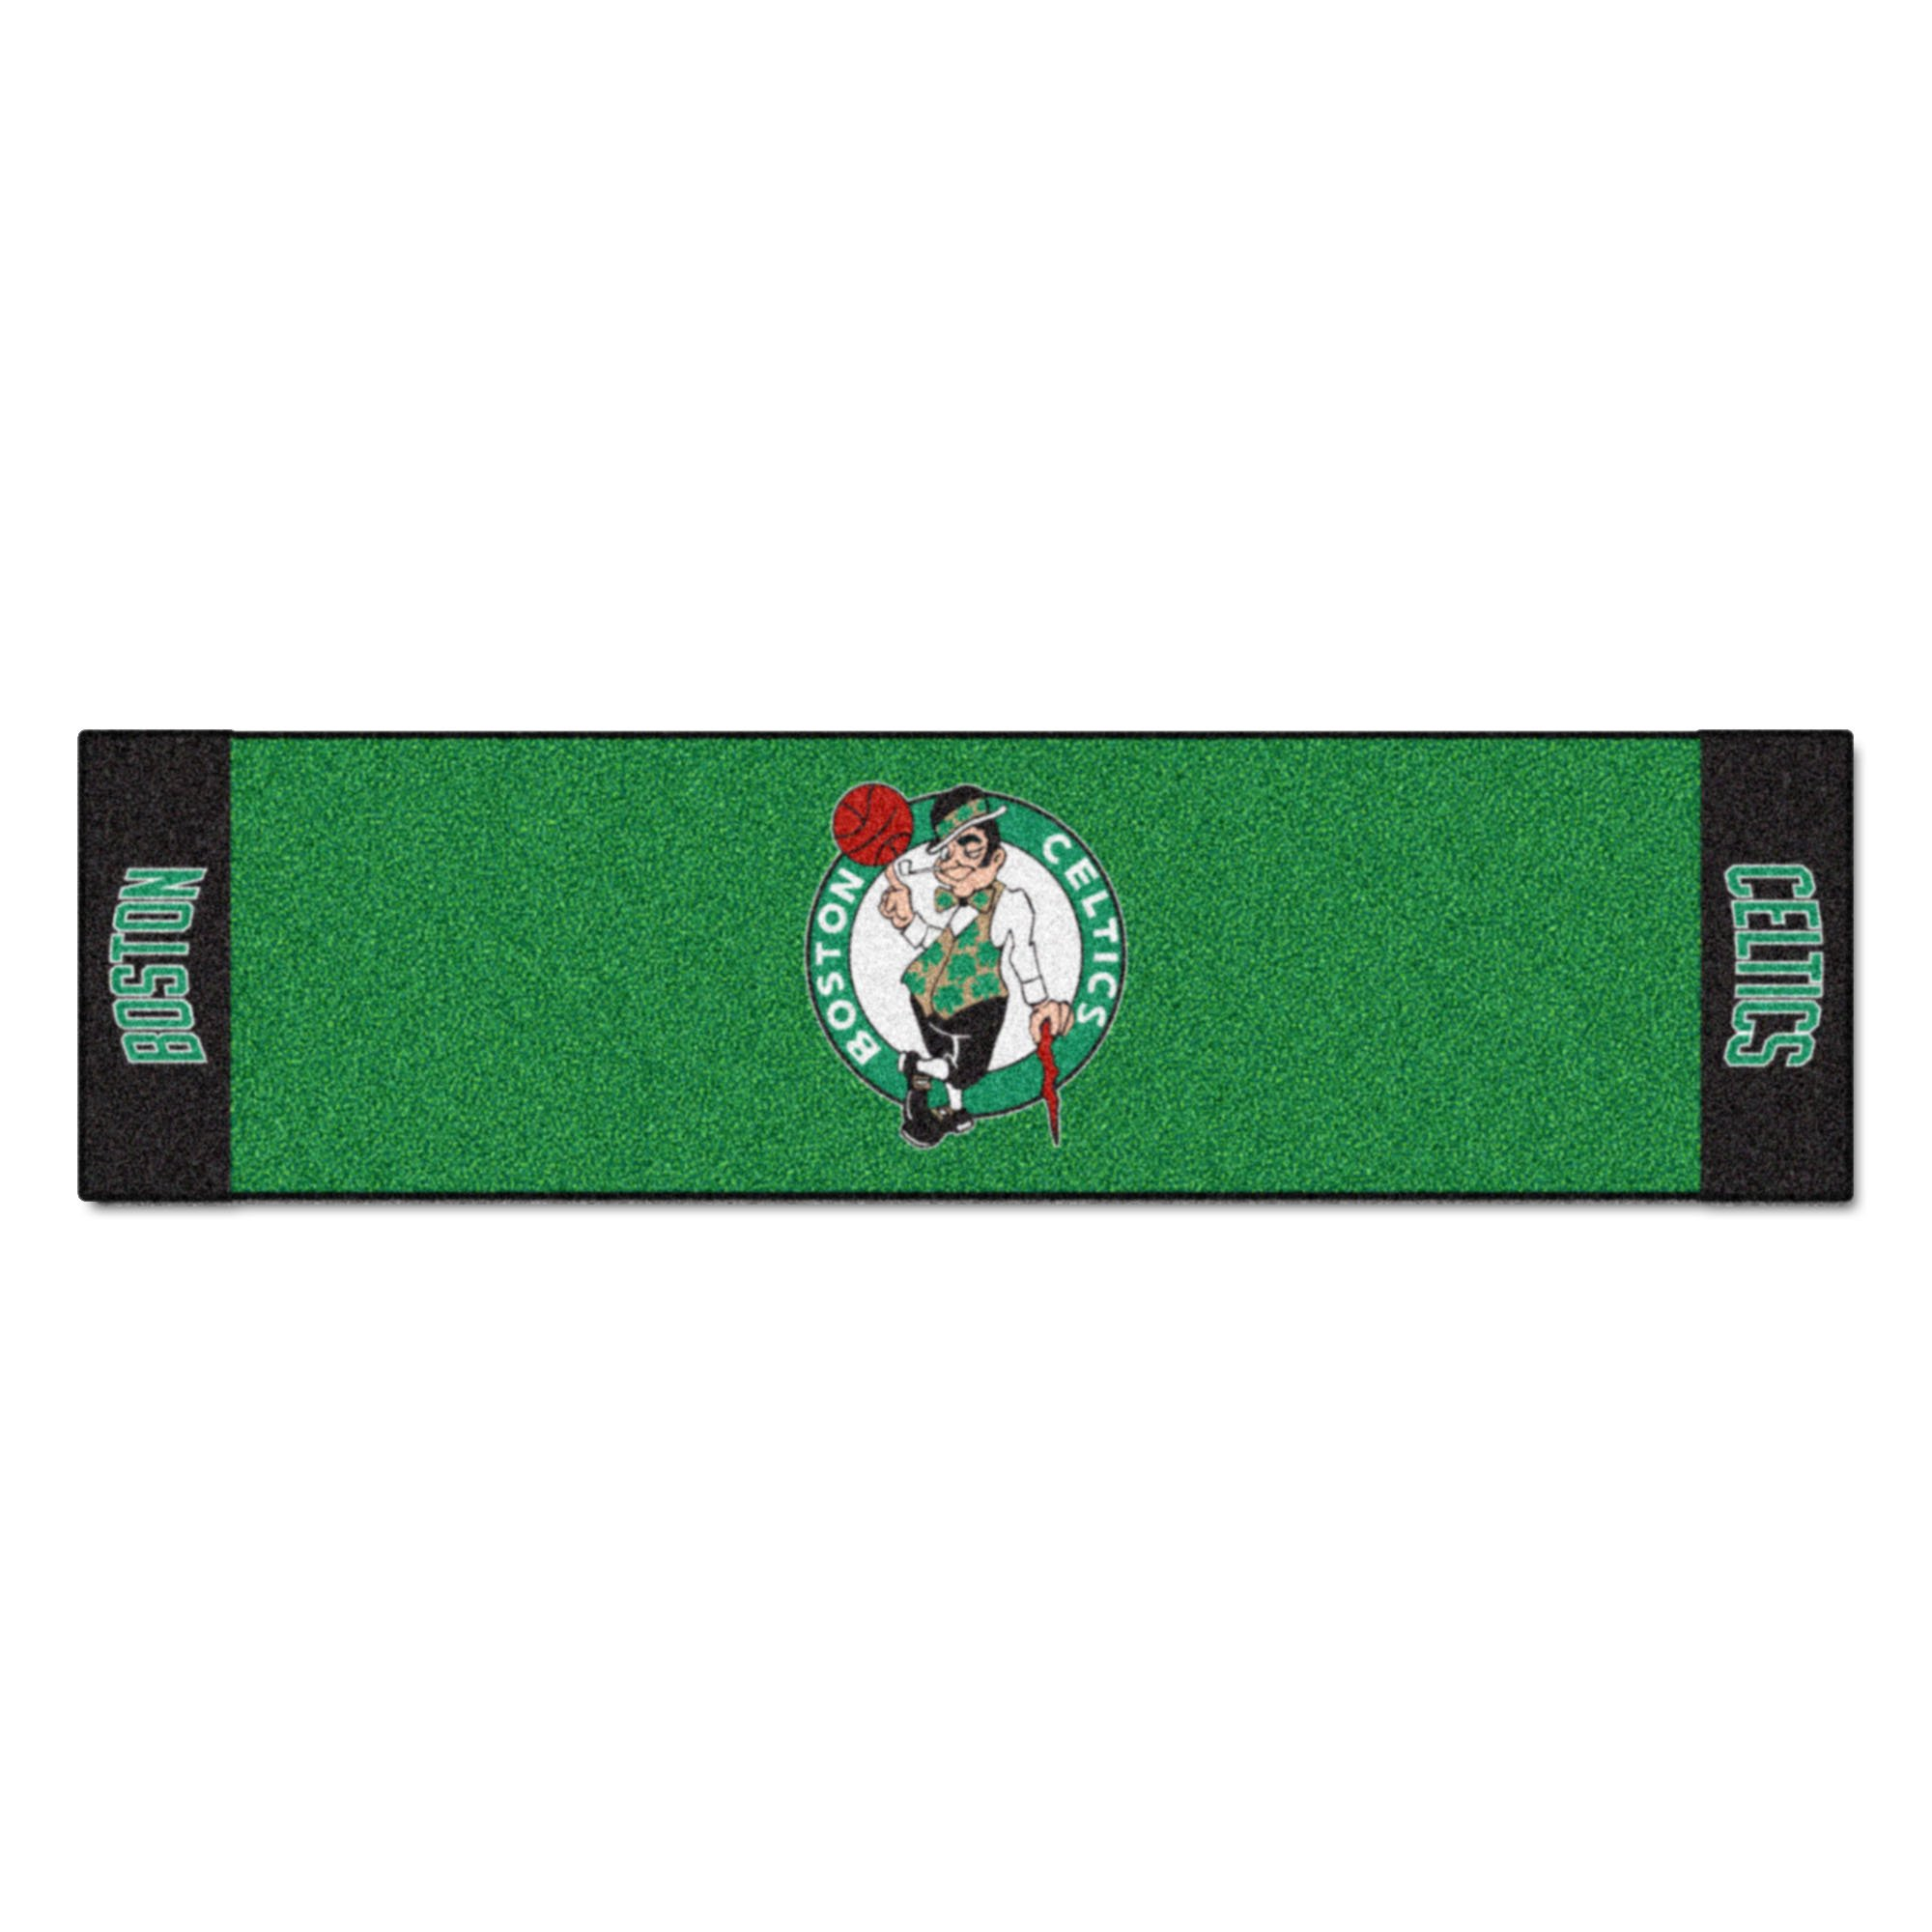 Fanmats NBA Boston Celtics Nylon Face Putting Green Mat by Fanmats